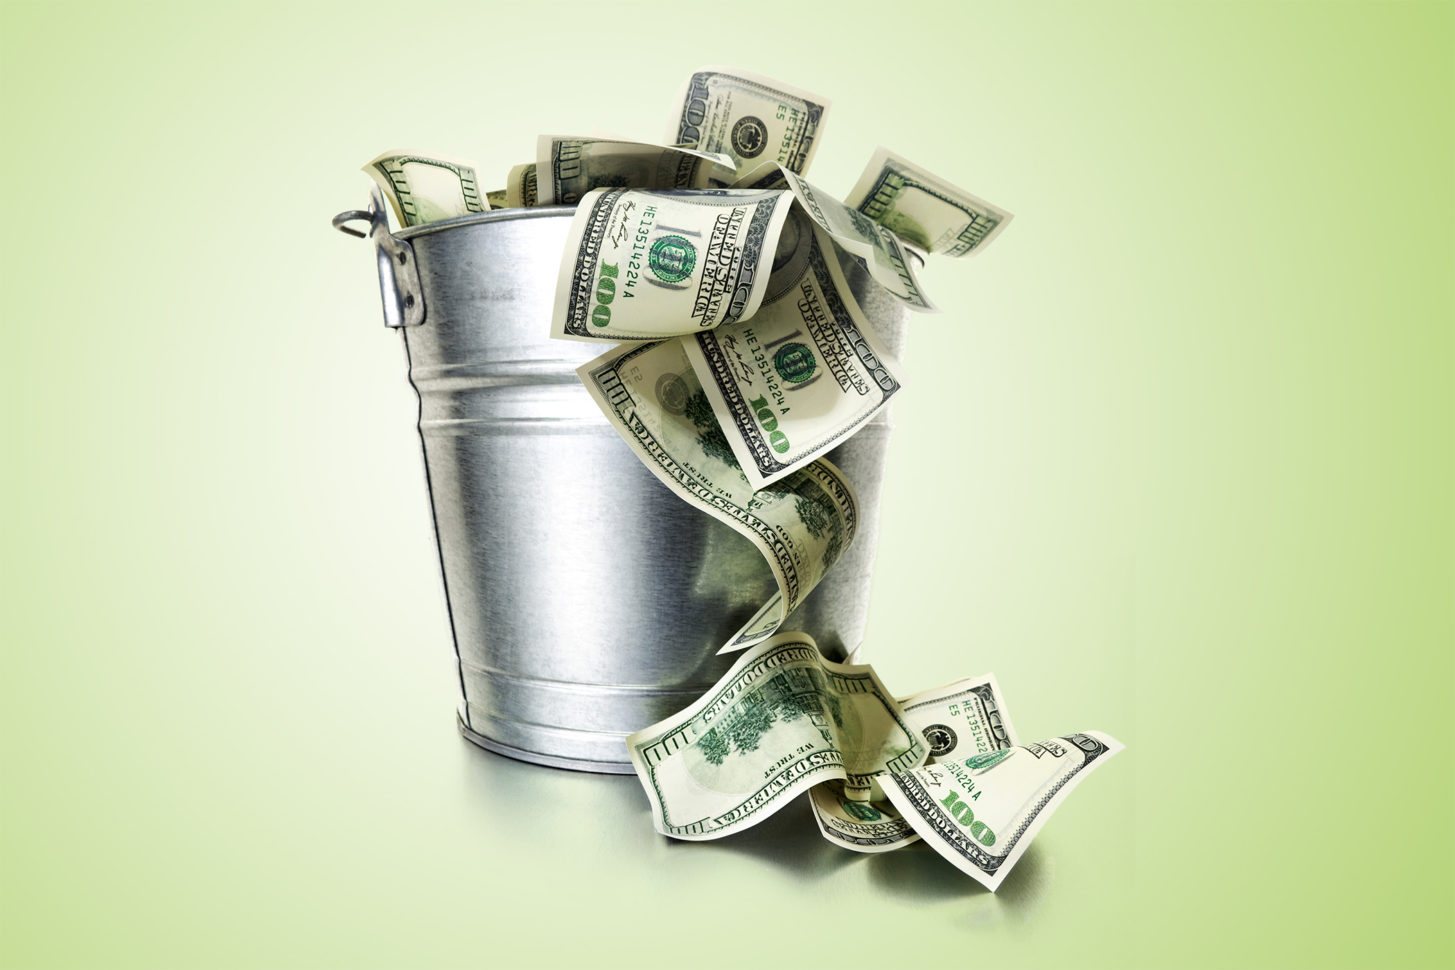 buckets of money spreadsheet  Buckets Of Money Spreadsheet For Retirement Income: Here's How To Use The Bucket Approach  Money Buckets Of Money Spreadsheet Printable Spreadshee